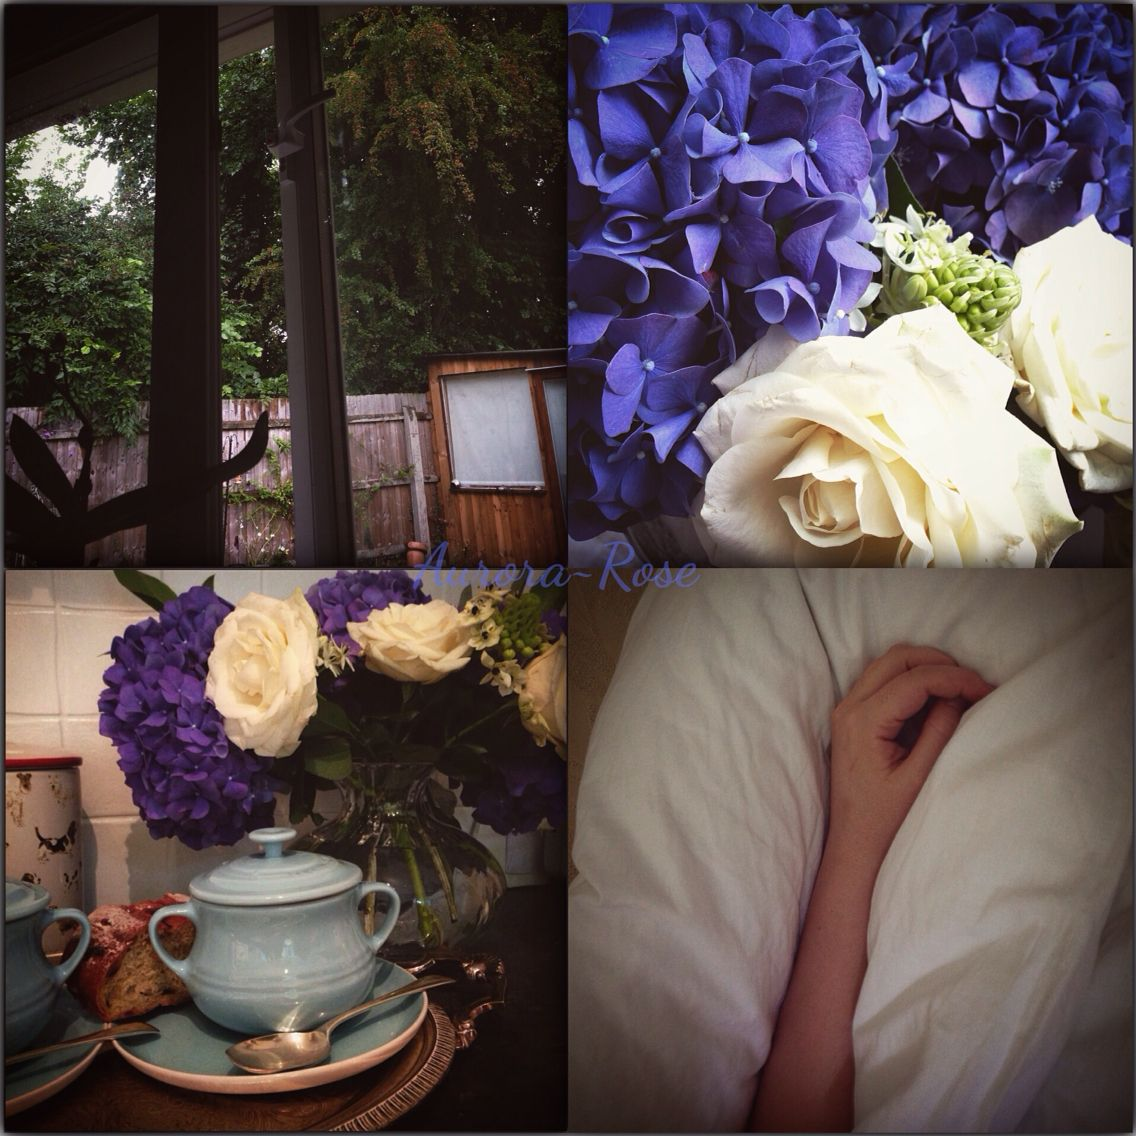 Days like these... #Hydrangeas #Soup #Warm #Flowers #Rain #Bed #Roses #Blue #Rustic #Autumn #Home